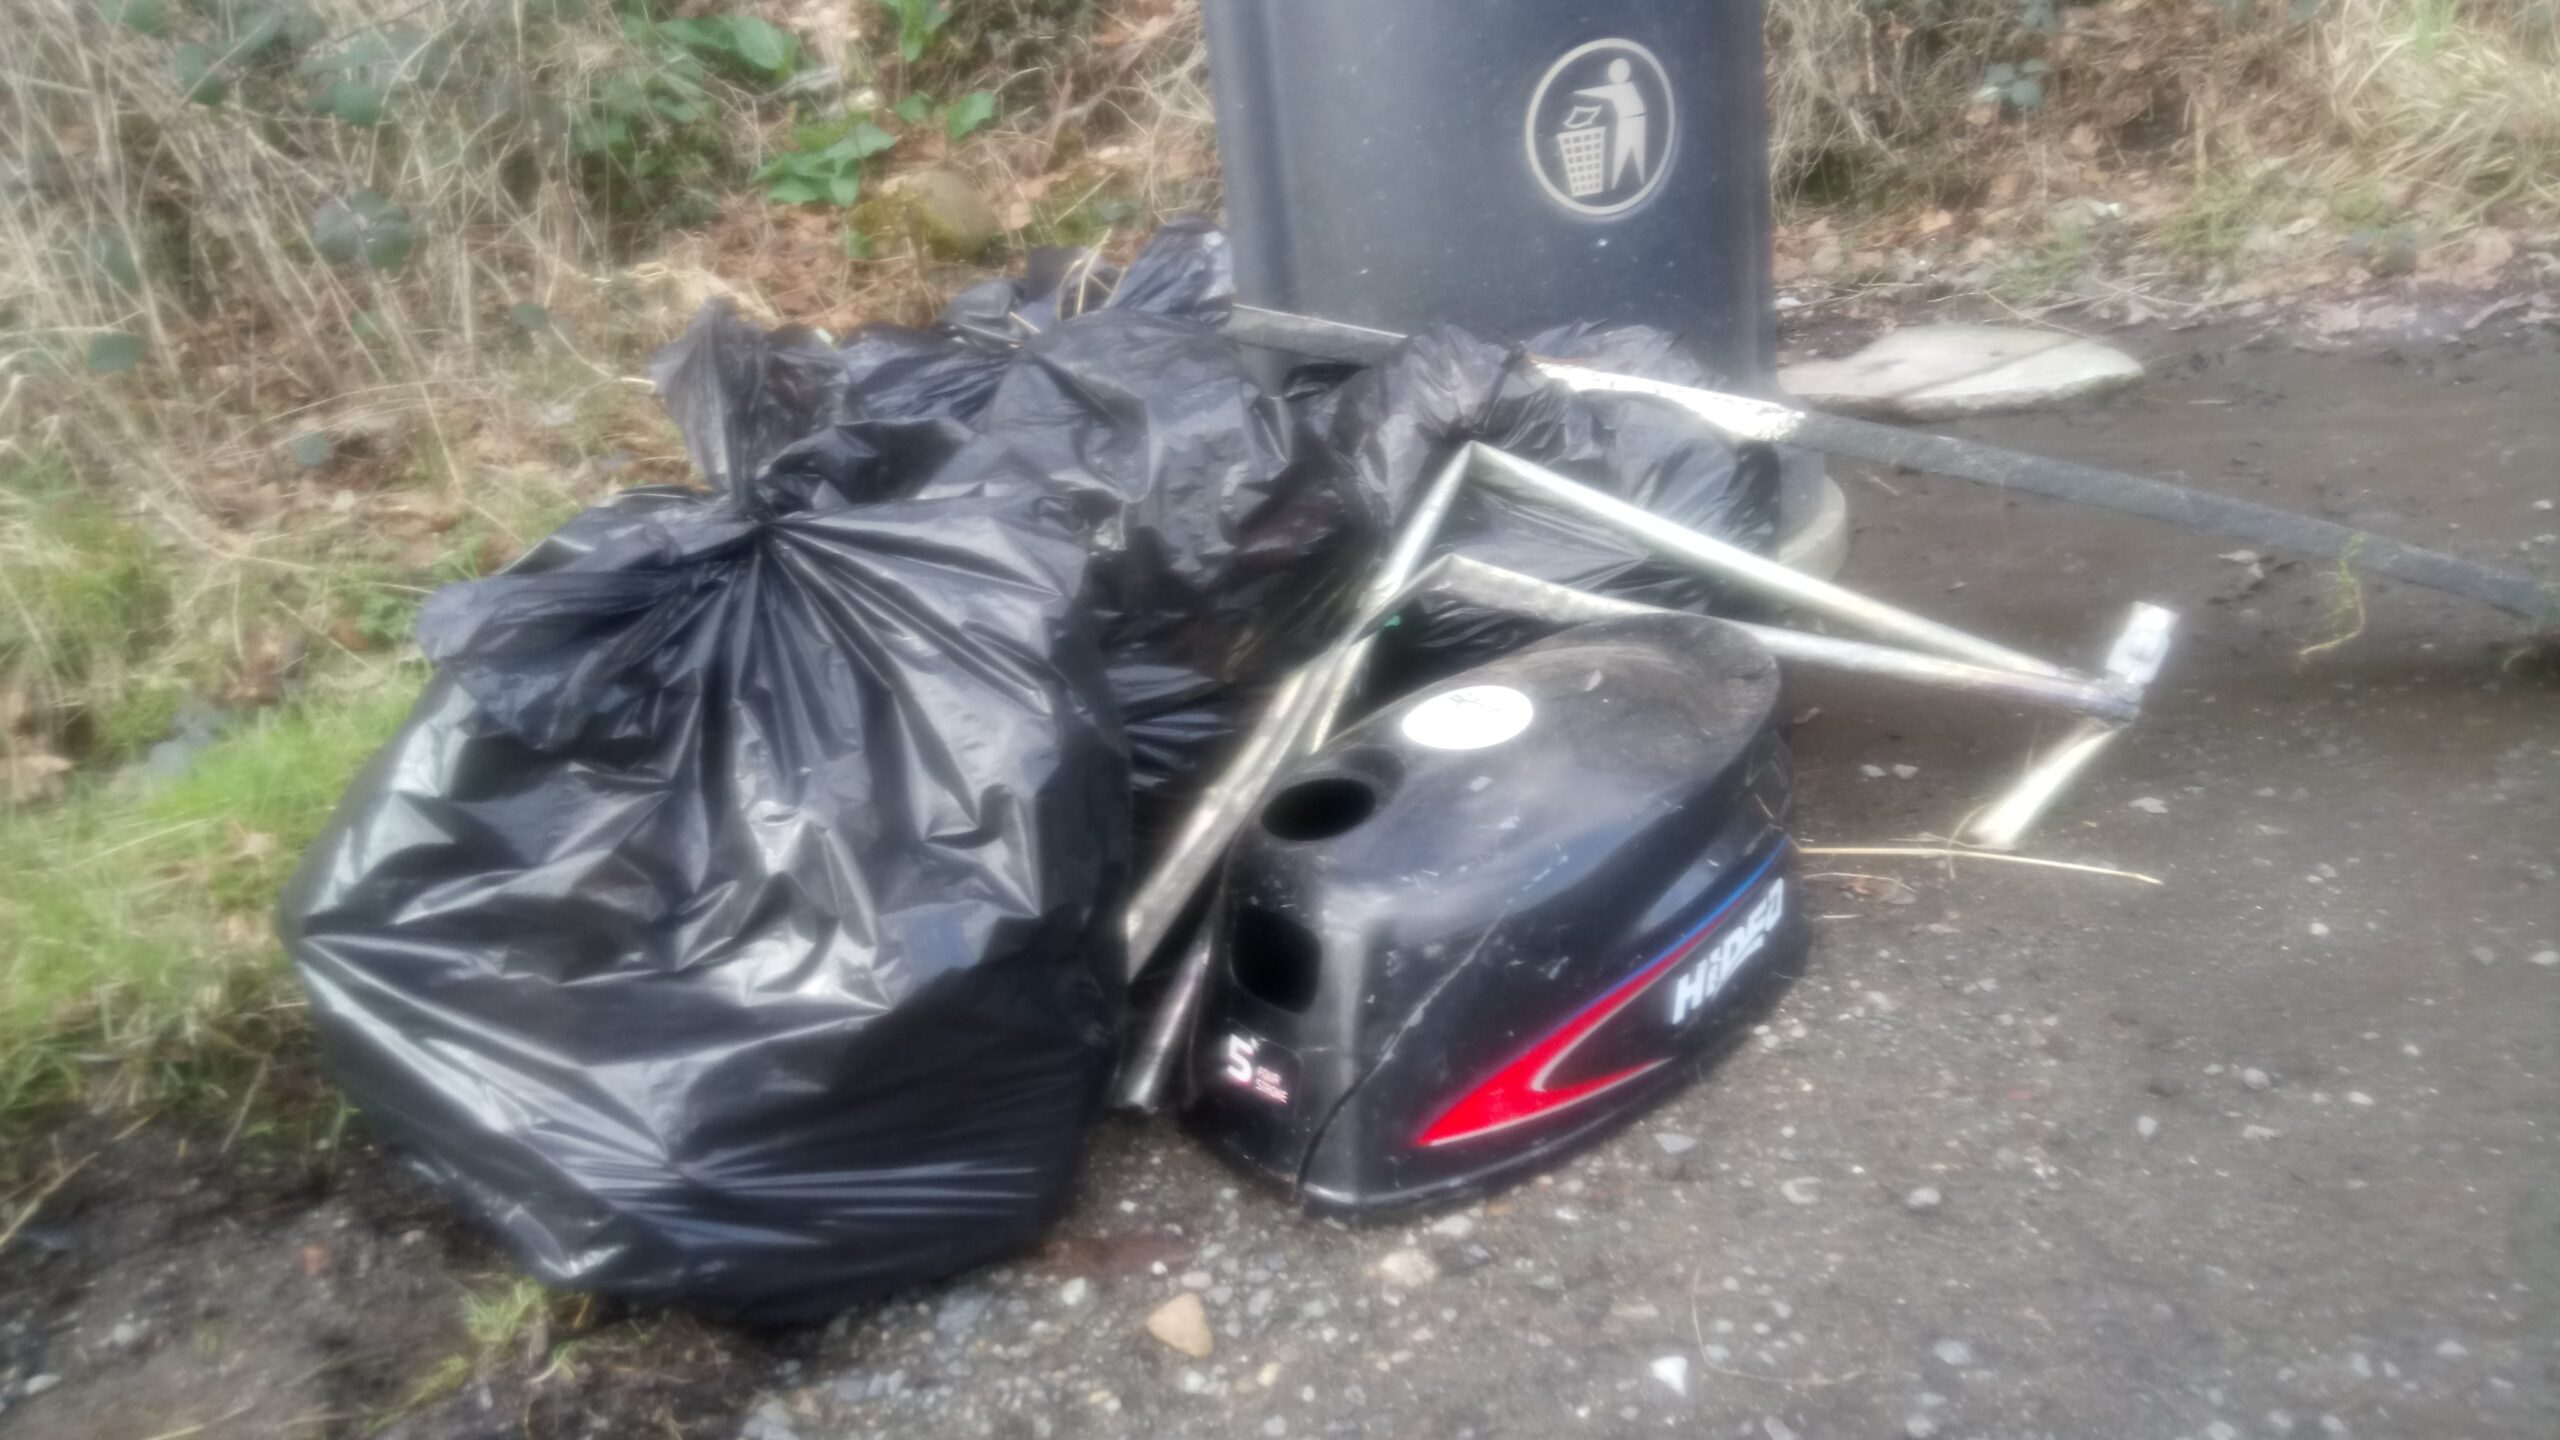 Litter and fly-tipping at Furnace Woods